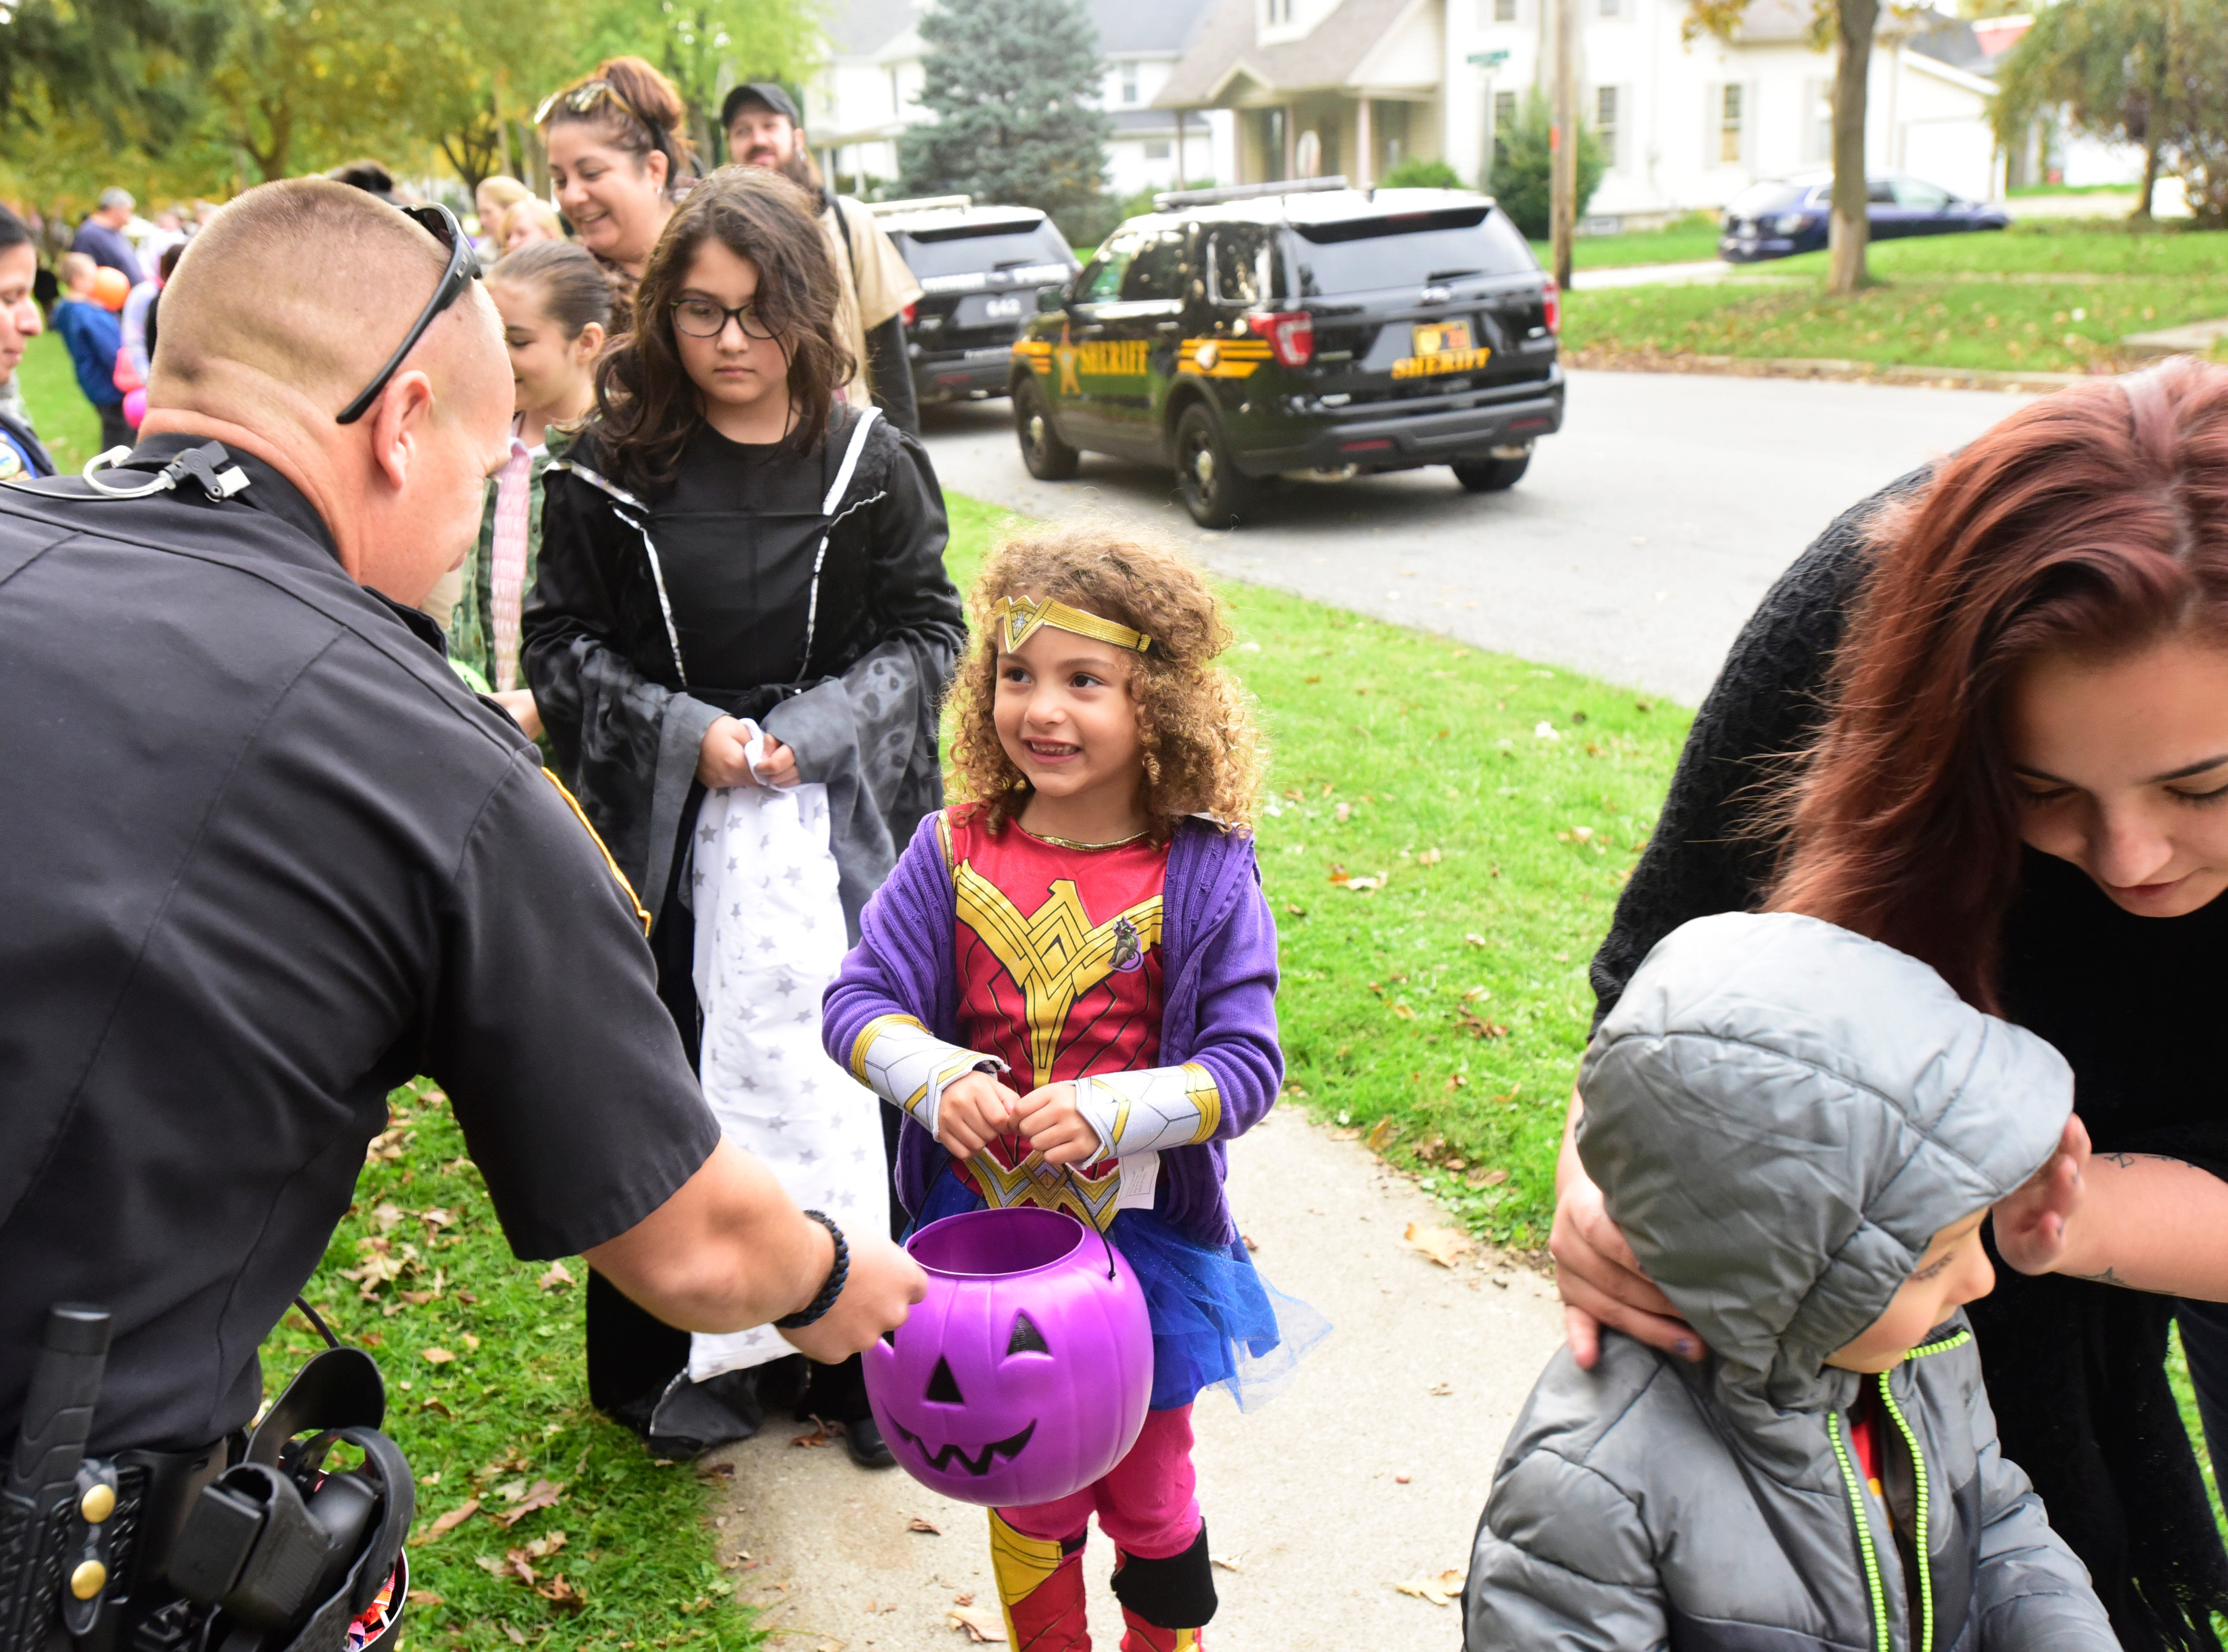 Deputy Gary Pollock of the Sandusky County Sheriff's Office gives candy to Ana'Leigh Sims, 5, of Fremont during Candy with the Cops at Birchard Park on Tuesday evening.